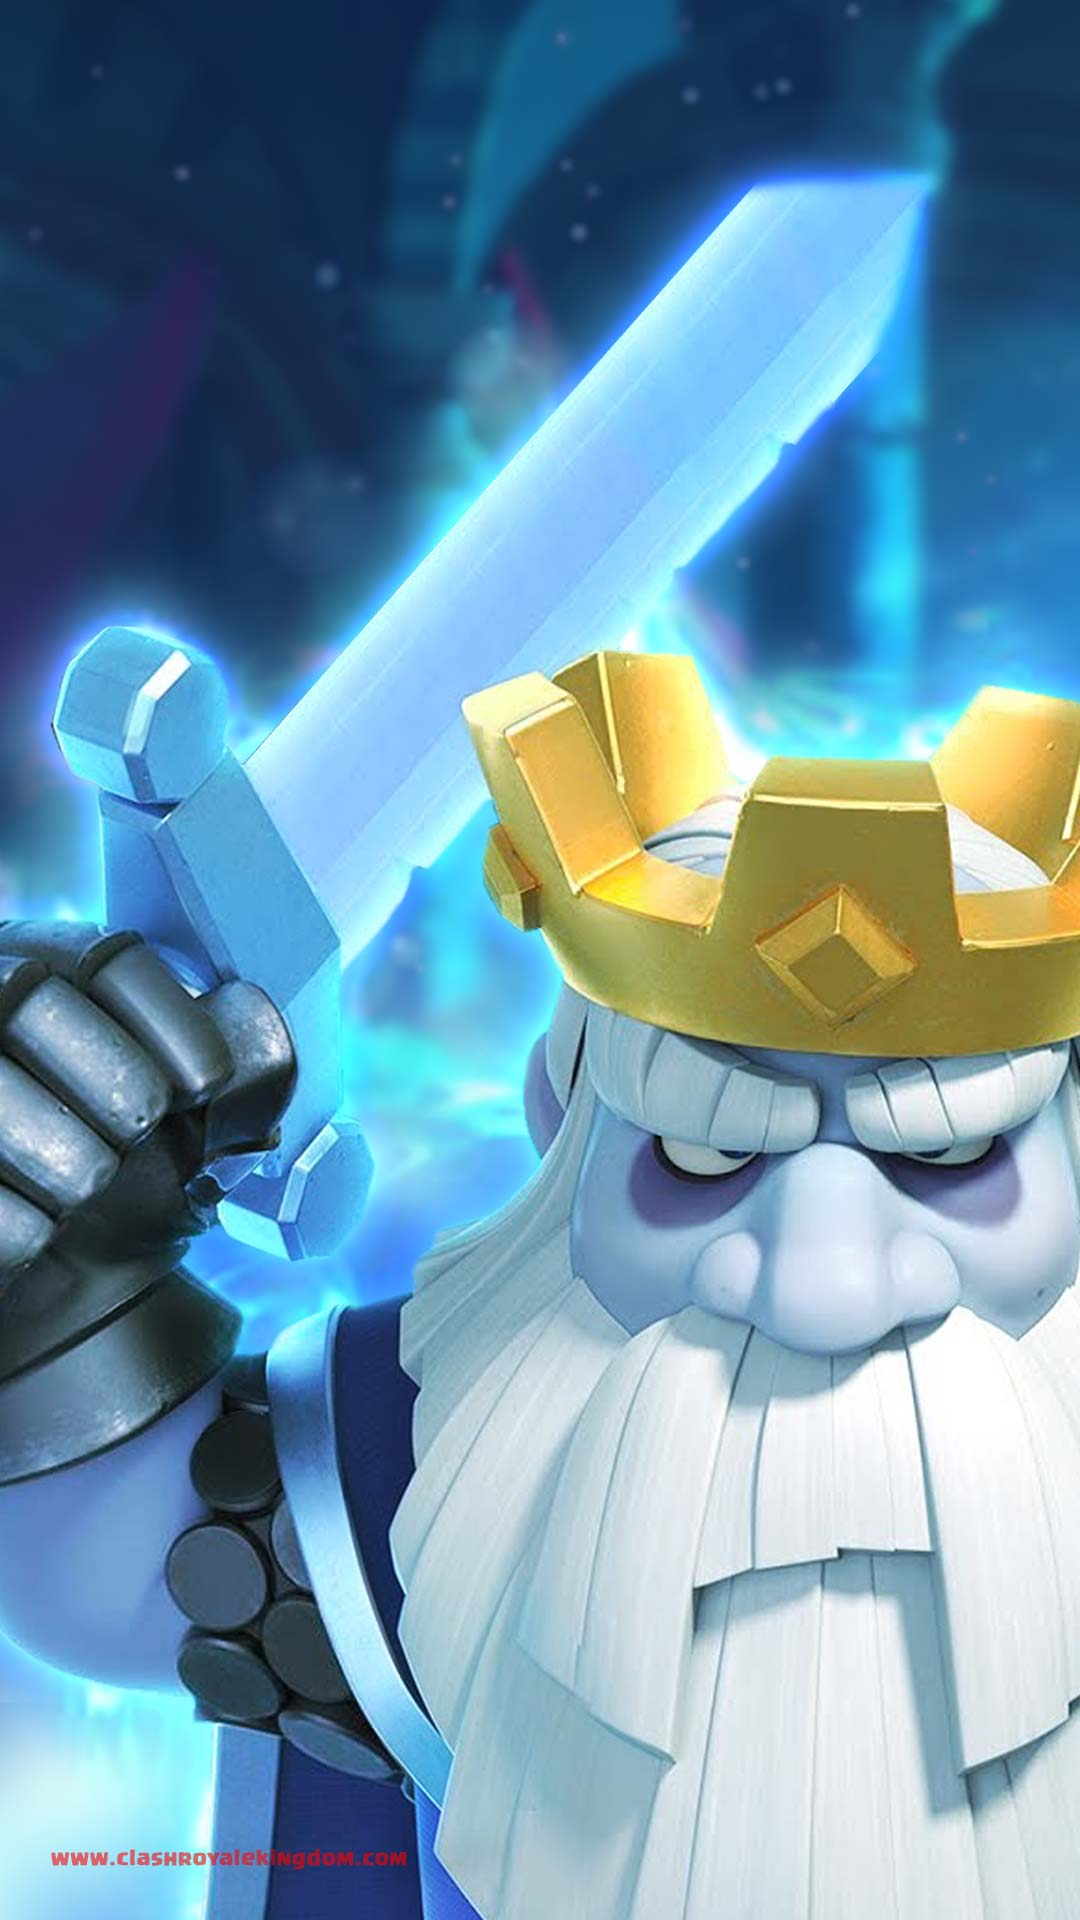 Clash royale wallpaper legendary